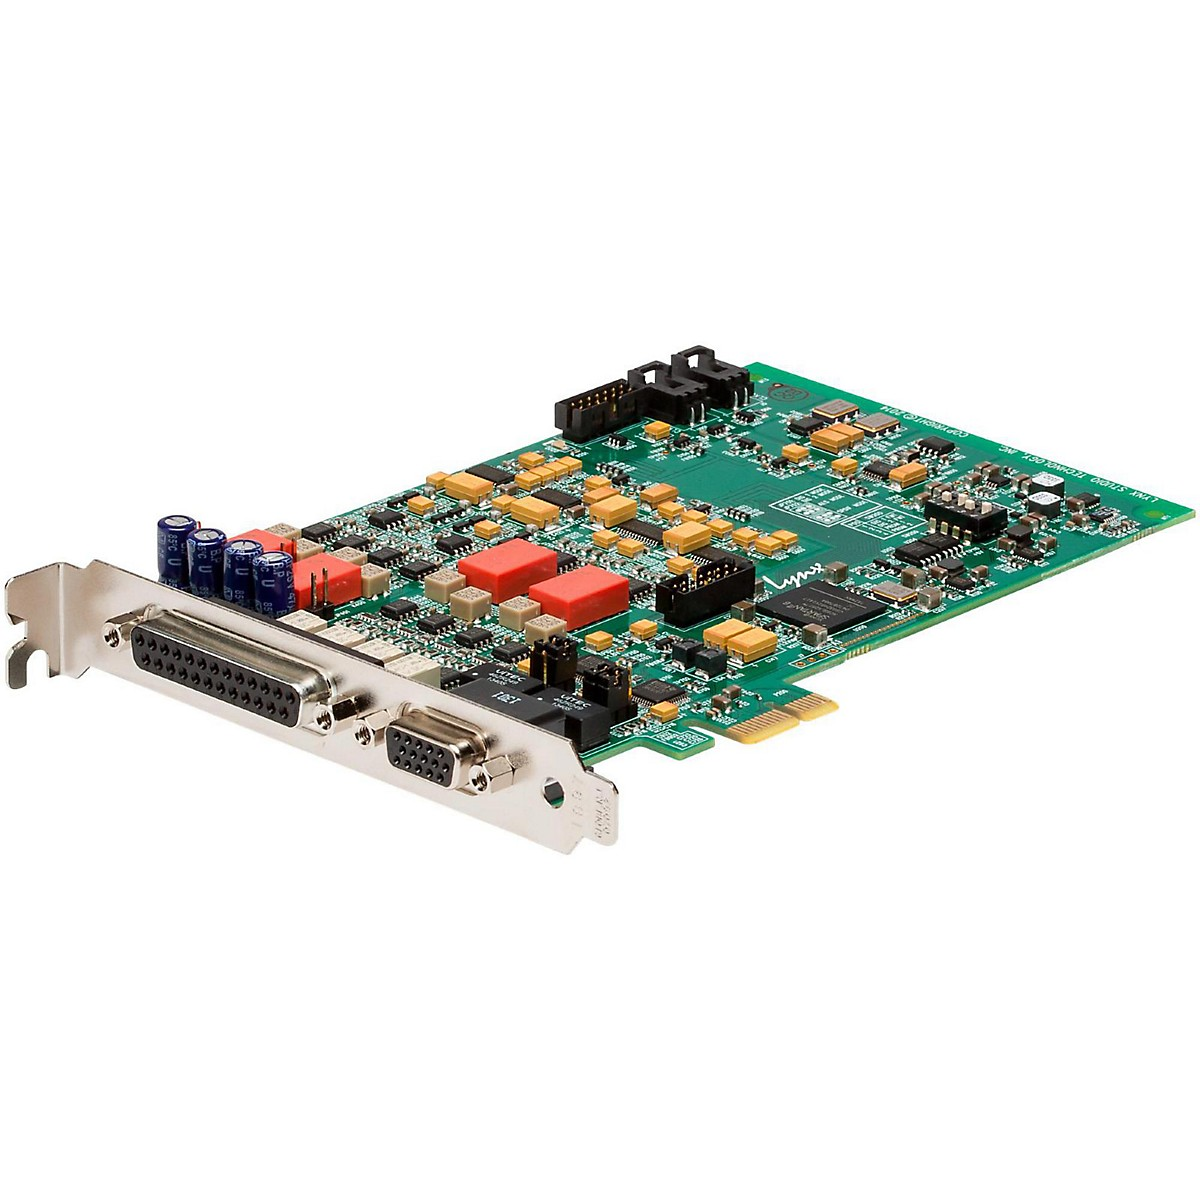 Lynx E44 4 Channel PCI Express Card